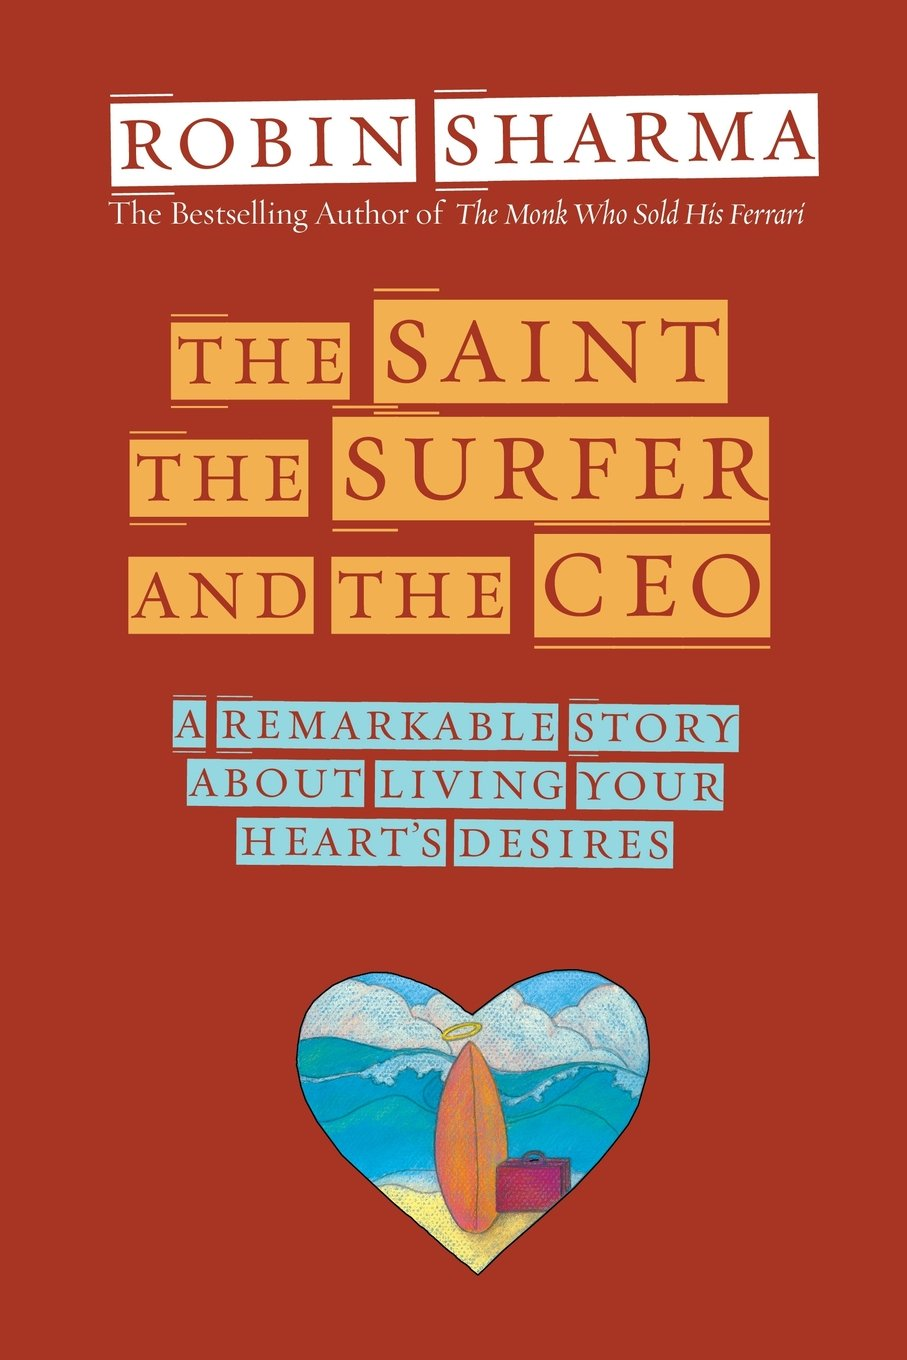 The Saint, the Surfer, and the CEO: A Remarkable Story about Living Your  Heart's Desires: Amazon.de: Robin Sharma: Fremdsprachige Bücher